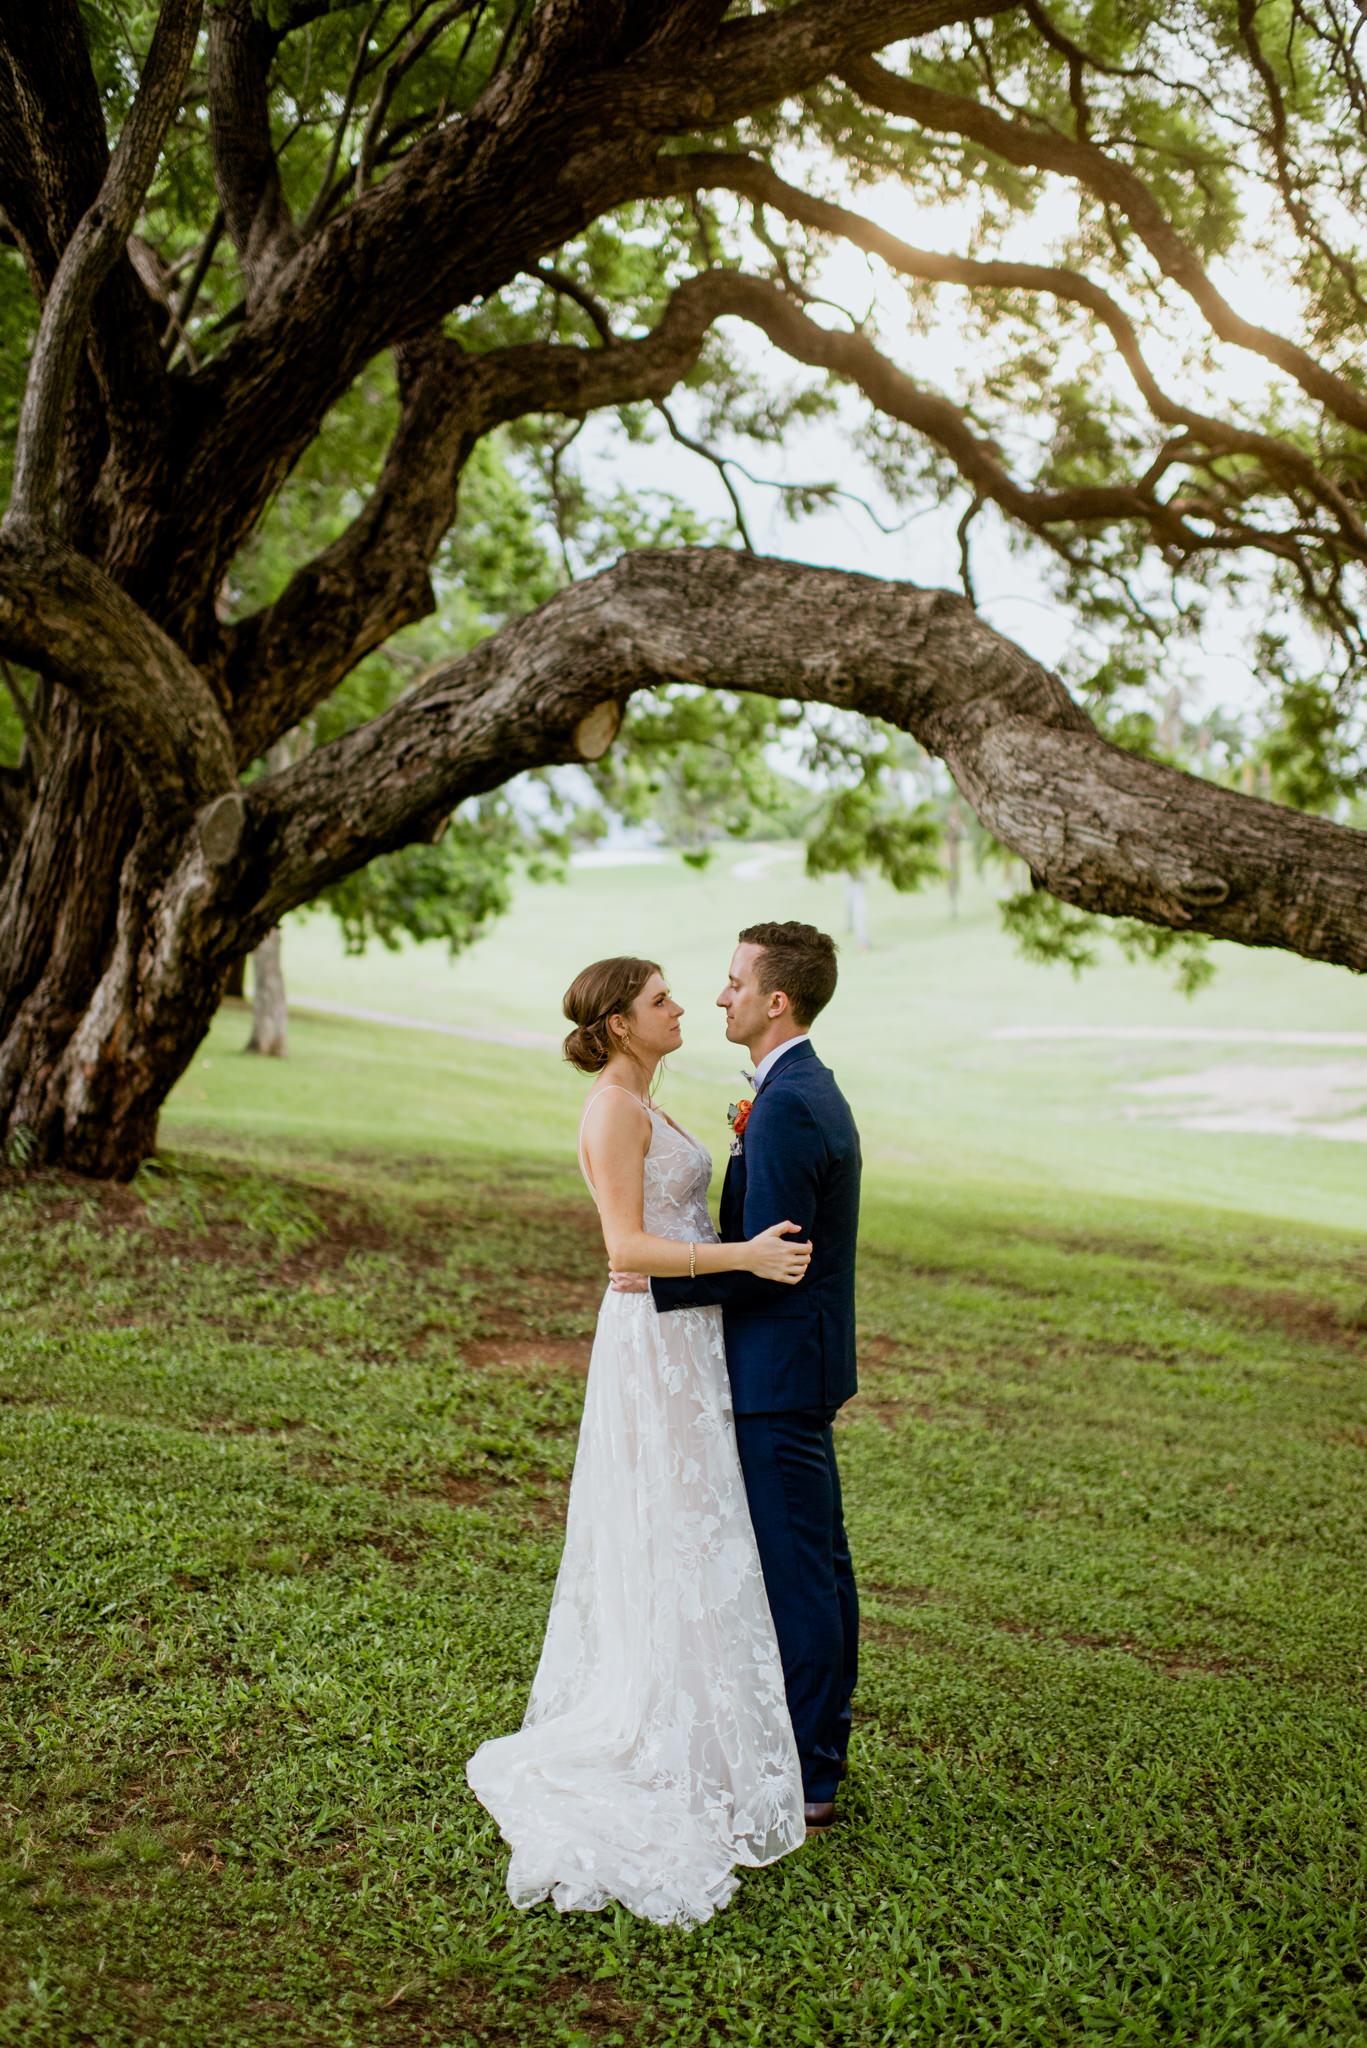 Newly married couple standing under long tree branch and staring at each other